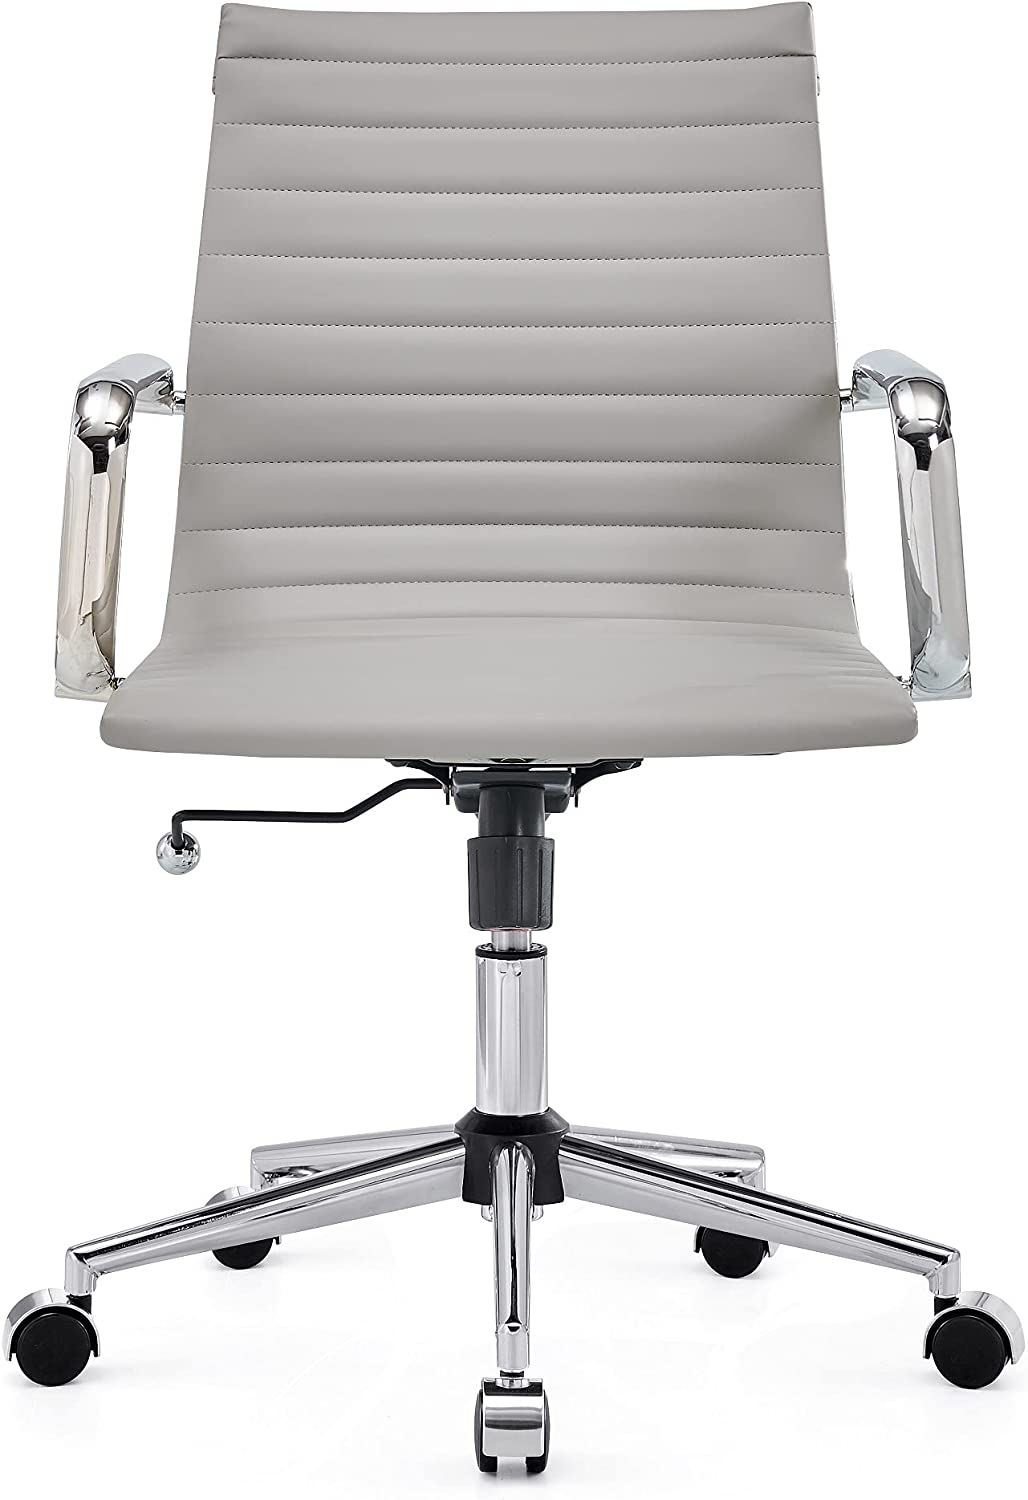 CAROCC Desk Chairs with Wheels Office Chair with Lumbar Support mid Back Office Chair Swivel Desk Chair 320lbs (3011 Grey)